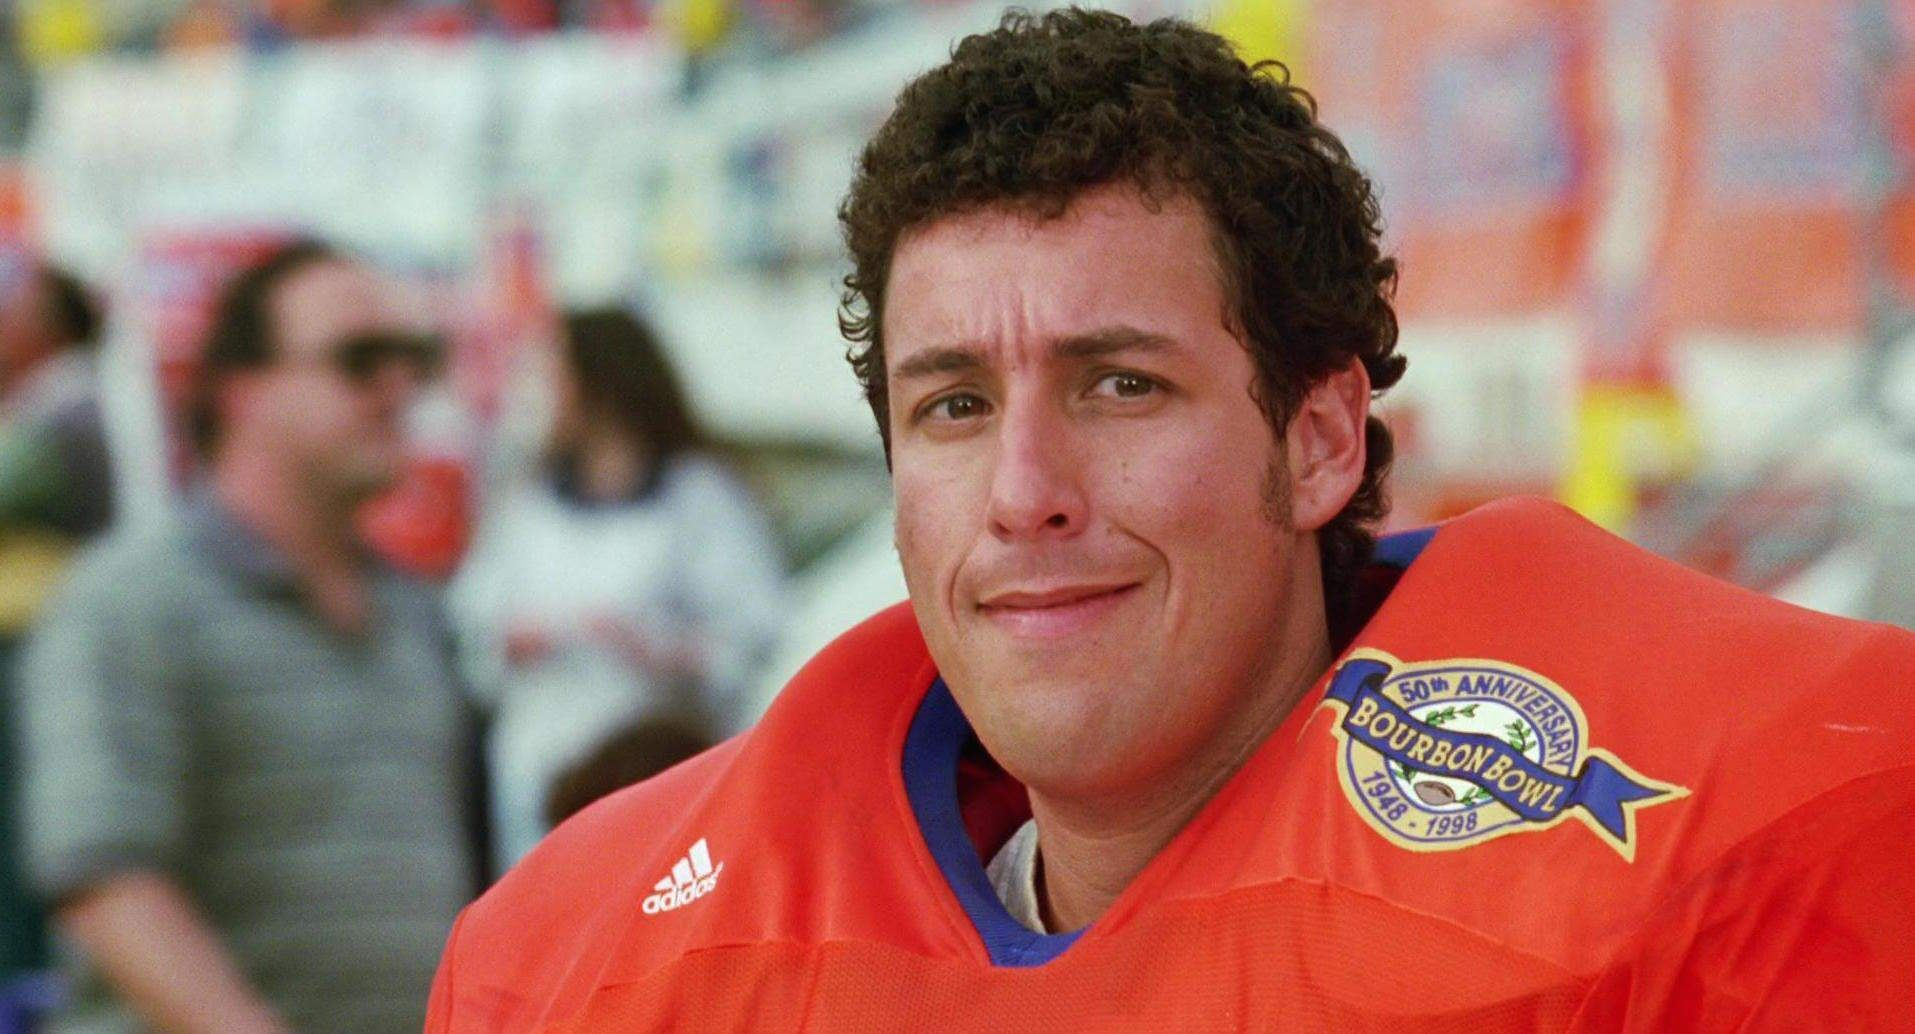 The Best Adam Sandler Movies You Can Watch Right Now